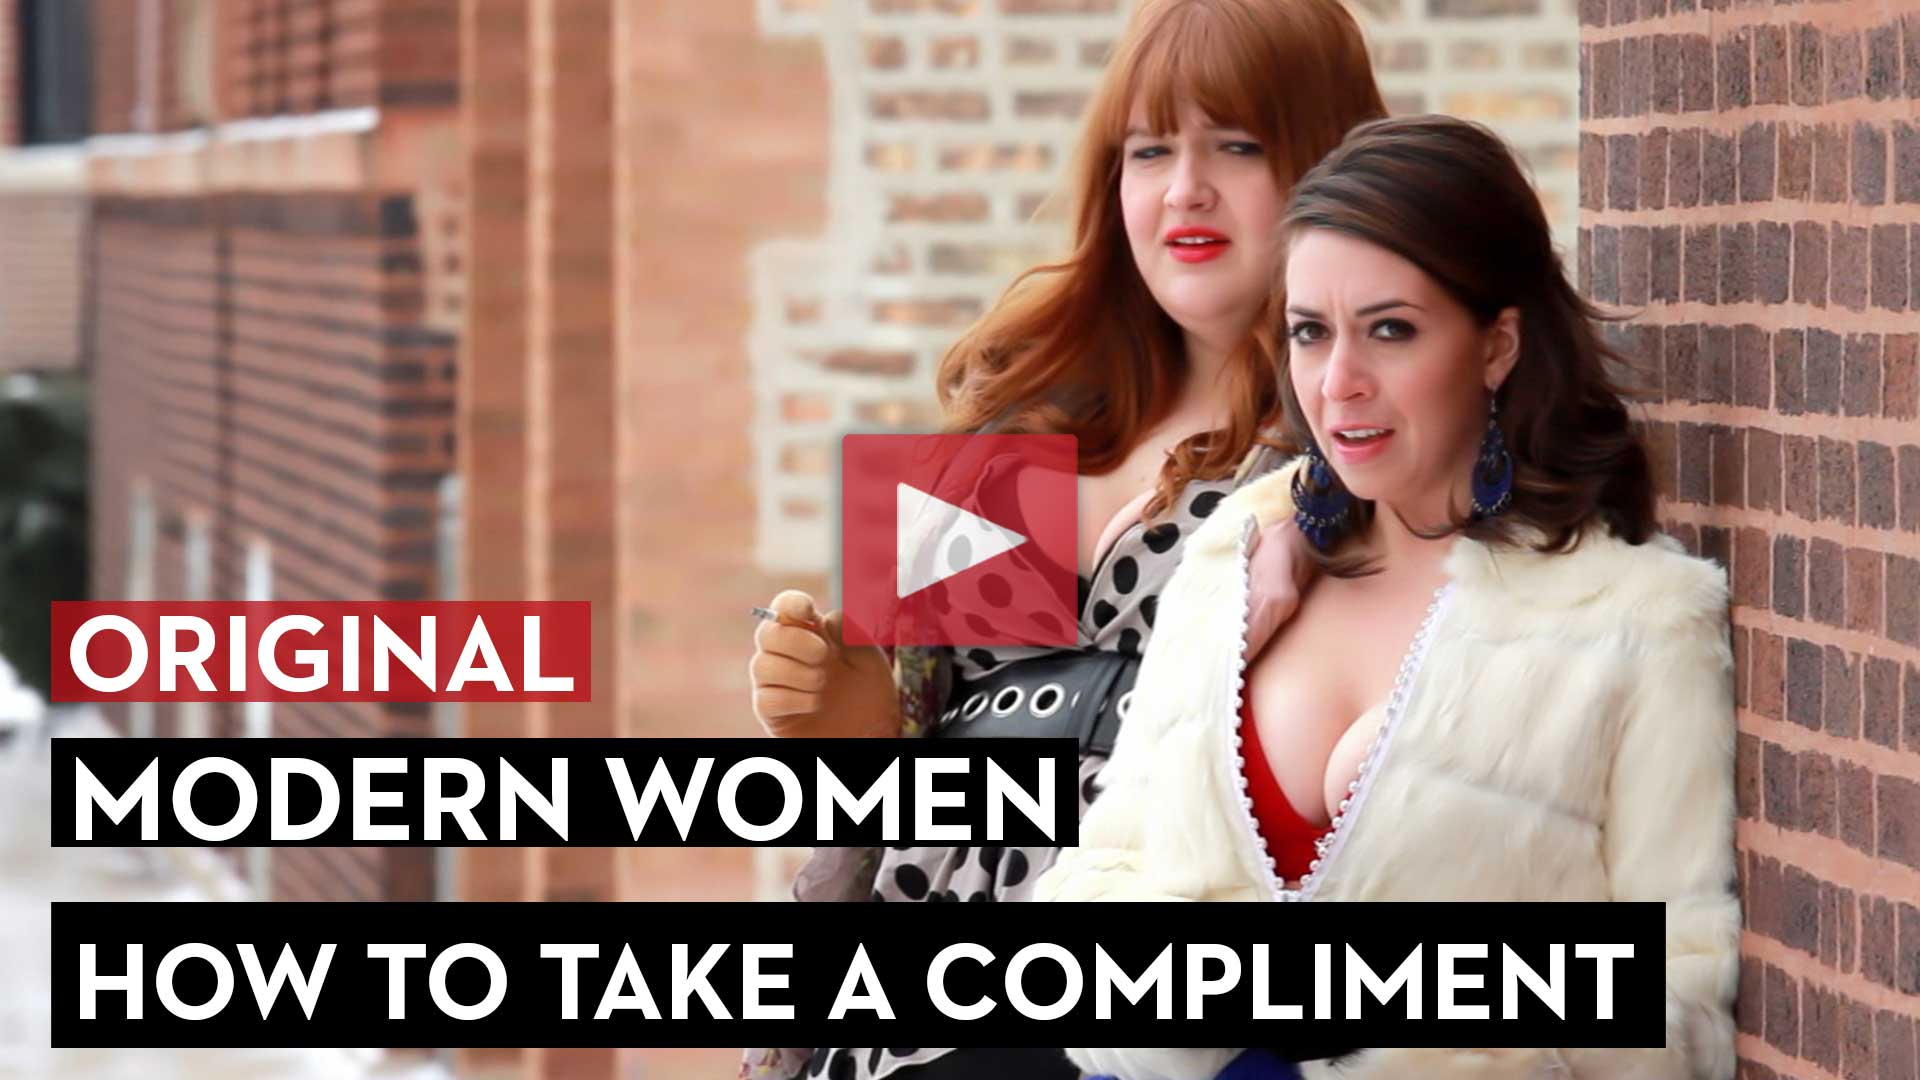 How to Take A Compliment - Modern Women Episode 7